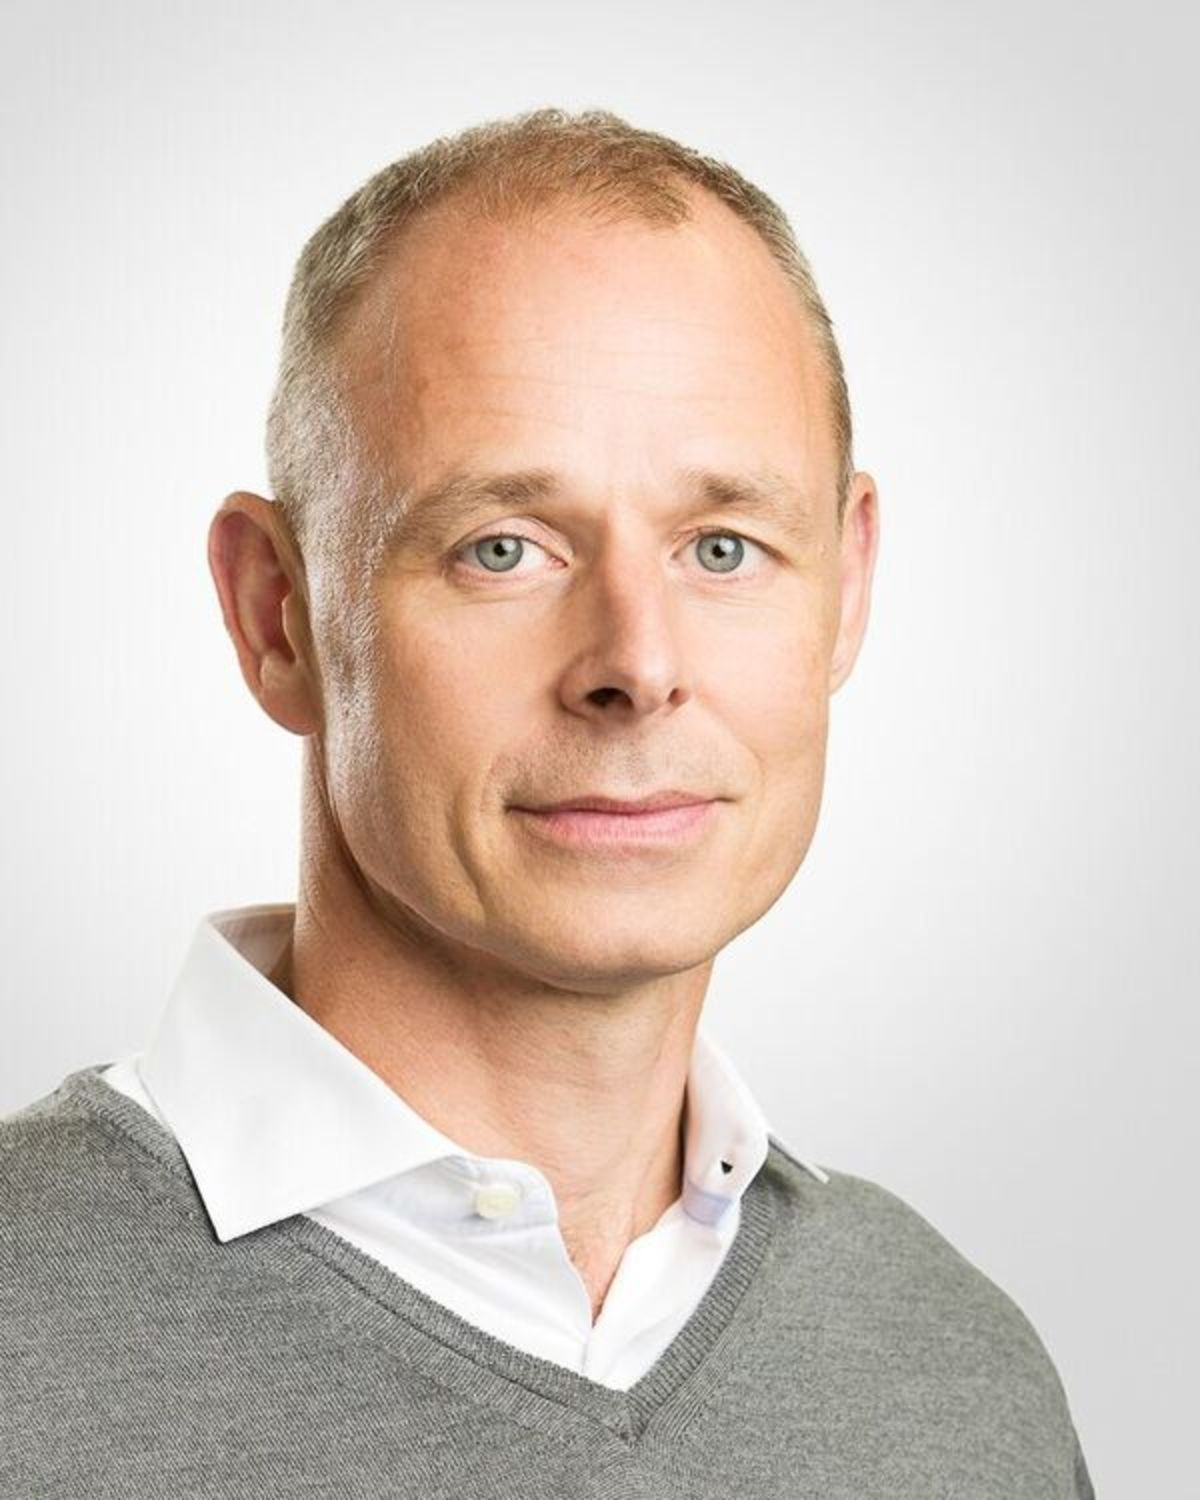 Head shot of Alex Hill, AEG Europe's Chief Operating Officer and Chief Financial Officer, who will succeed Miserendino on January 1, 2019